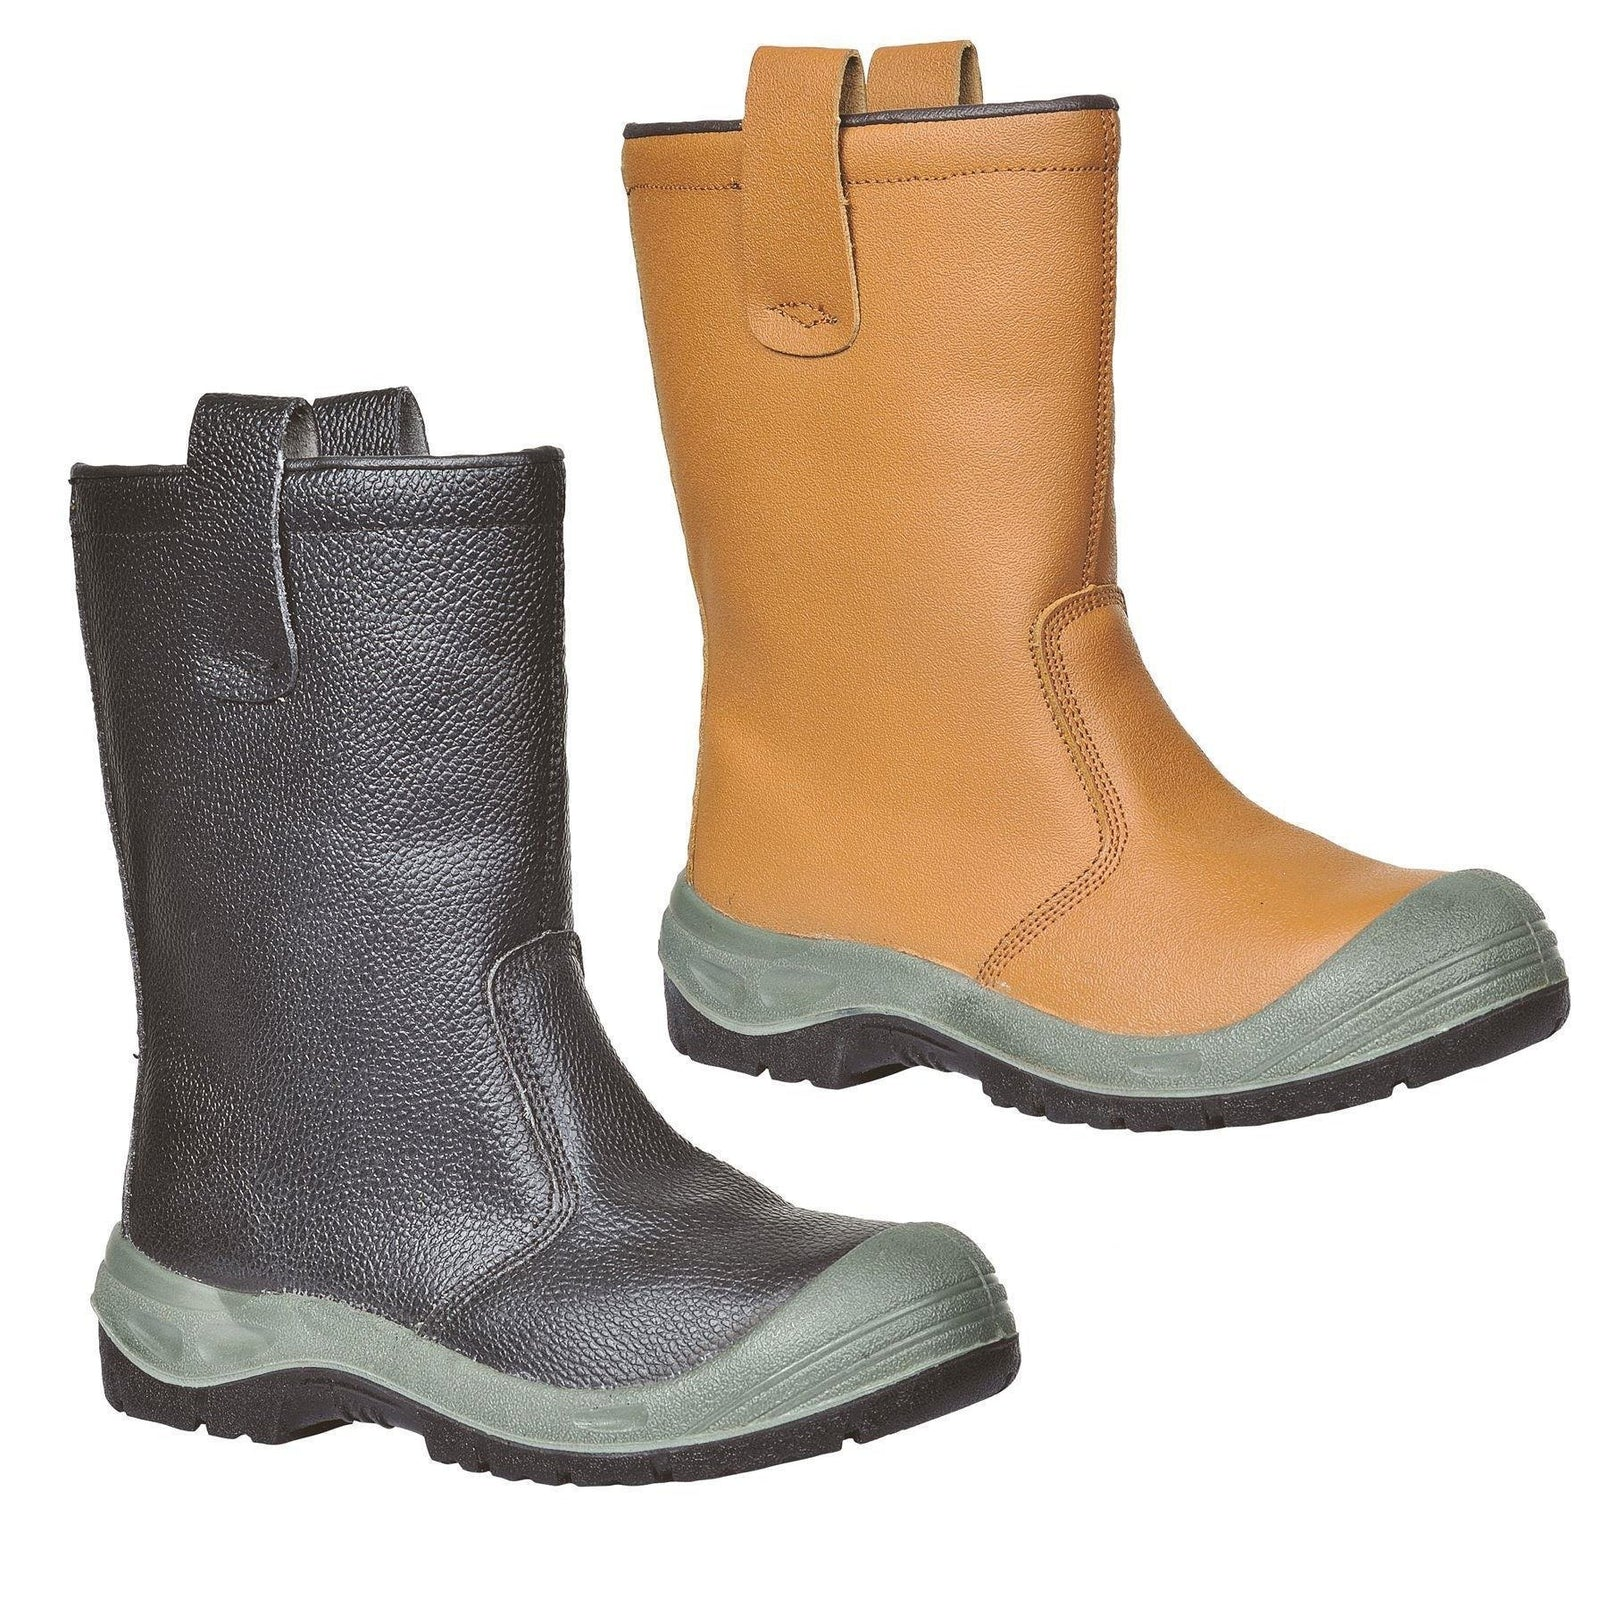 Portwest Steelite Rigger Boot S1P CI (With scuff cap) - reid outdoors